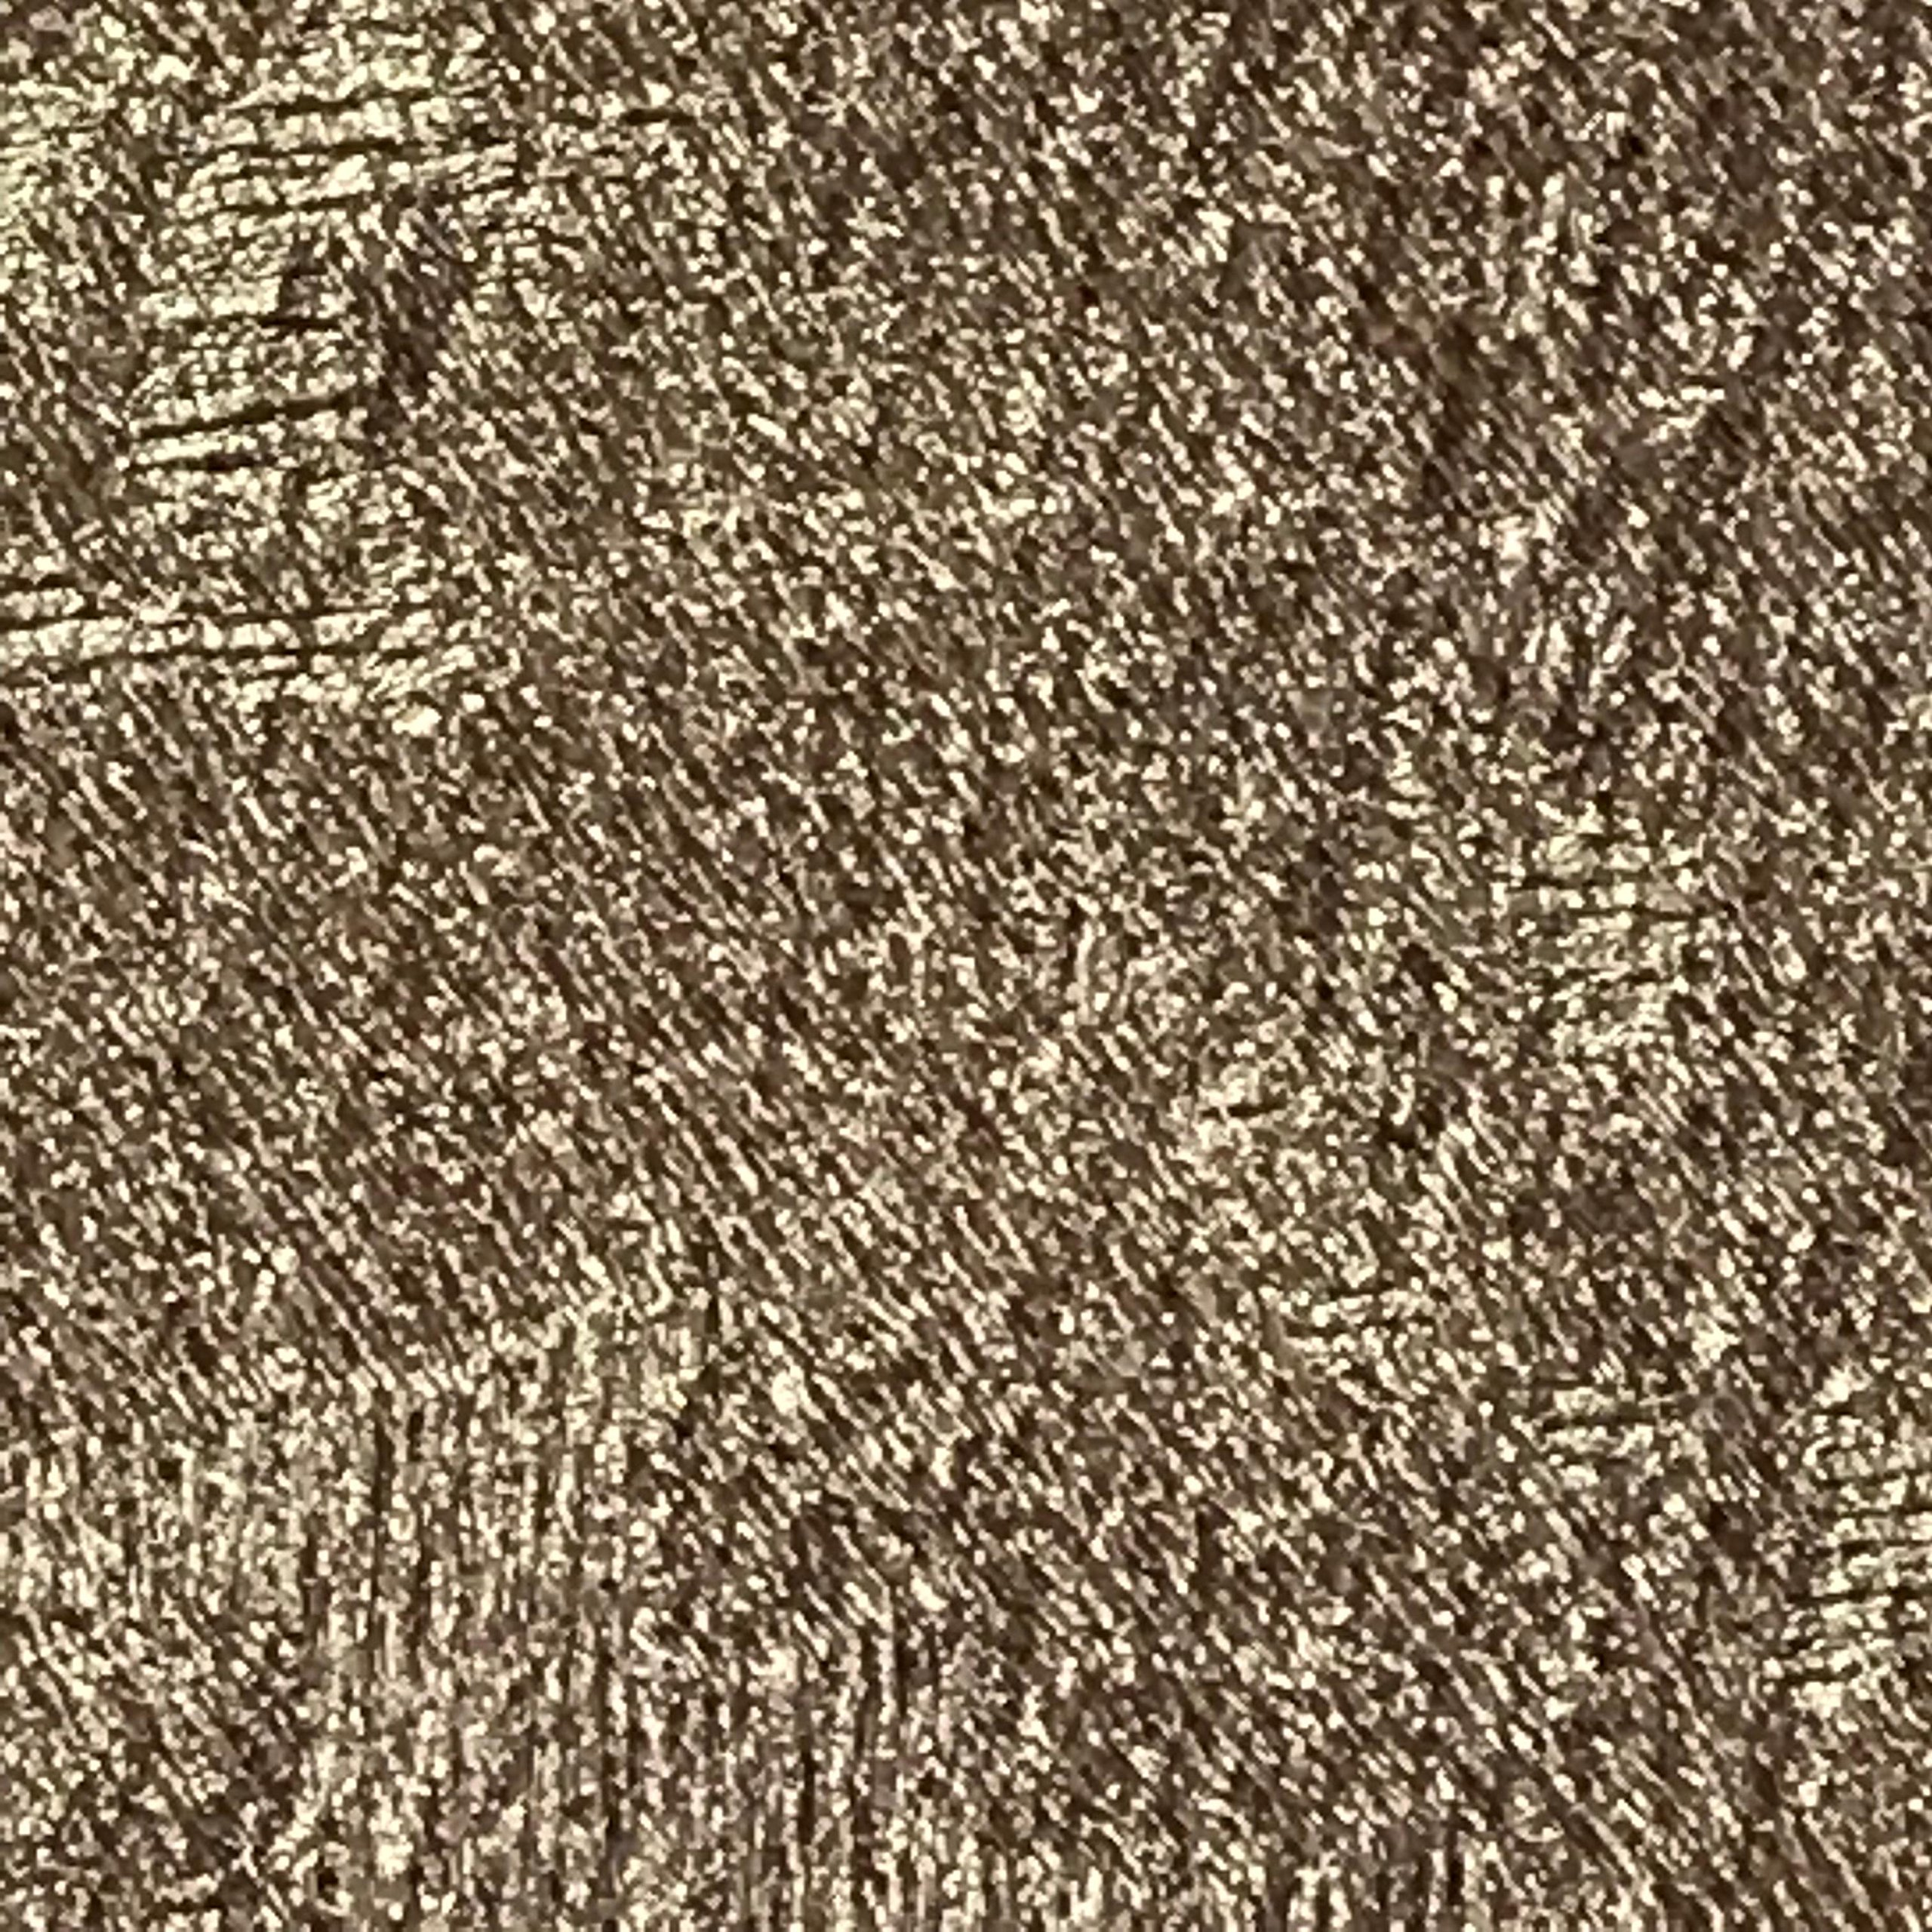 76 sq.ft rolls made in Italy Portofino textured wallcoverings modern abstract Kashmir embossed Vinyl Wallpaper brown bronze metallic faux wool fabric design plain strippable washable wall coverings 3D